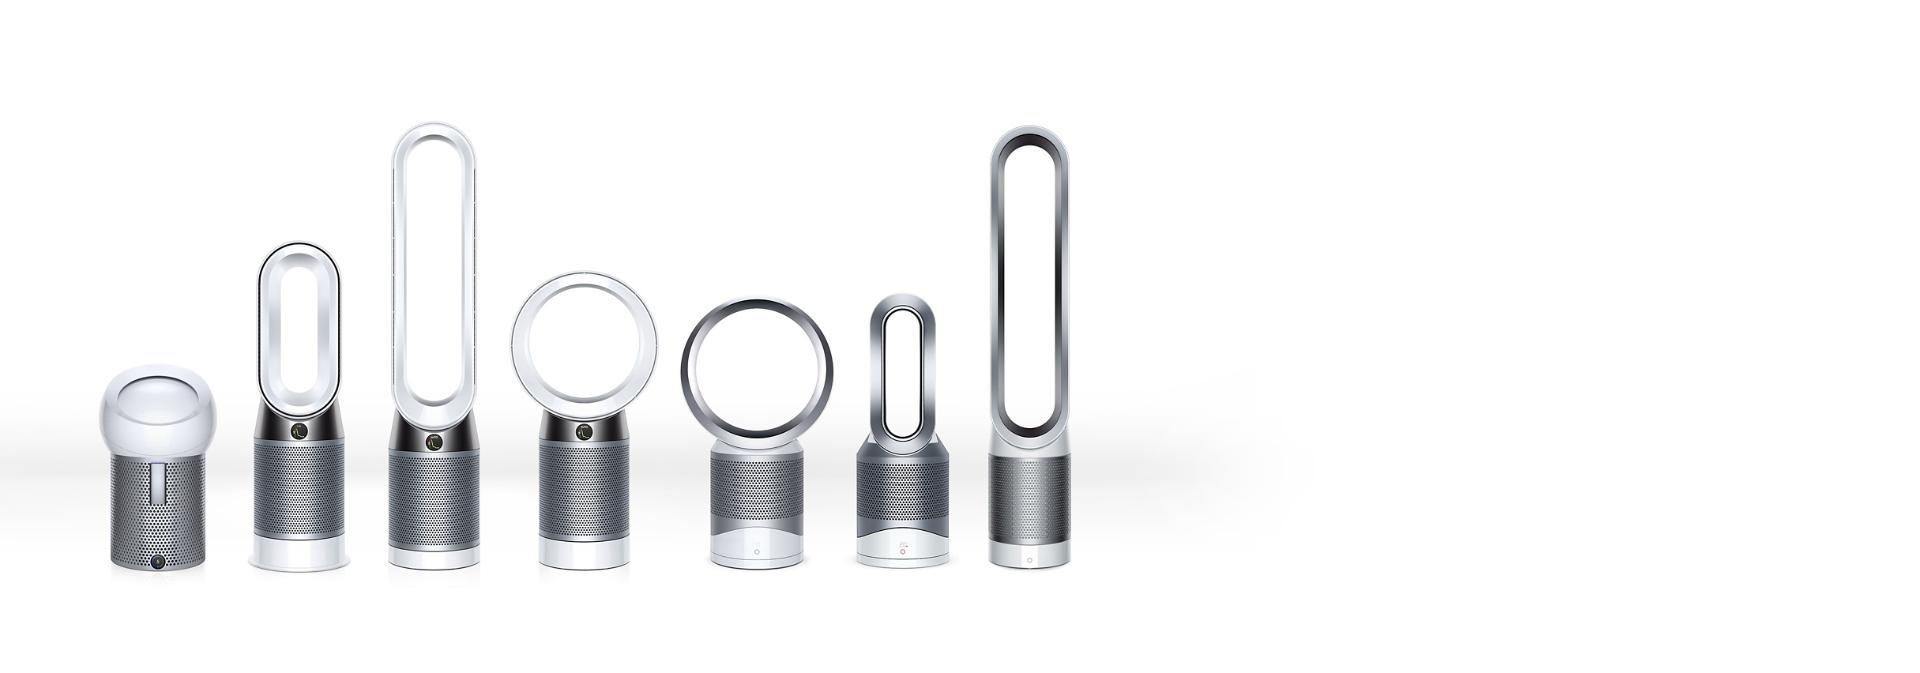 Whole Dyson purifier range in a row